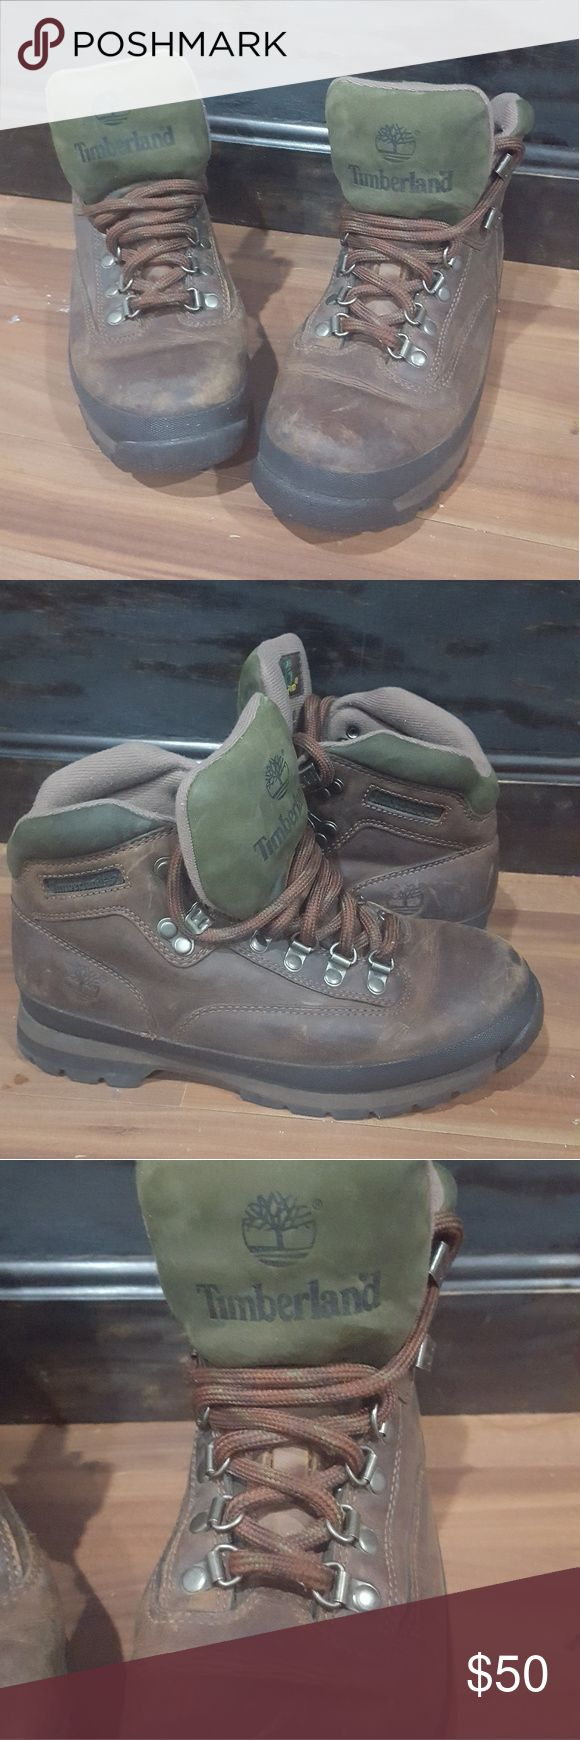 Timberland Brown Boots Brown Timberland Winter Boots Size 8.5 In great condition Only worn twice Timberland Shoes Winter & Rain Boots